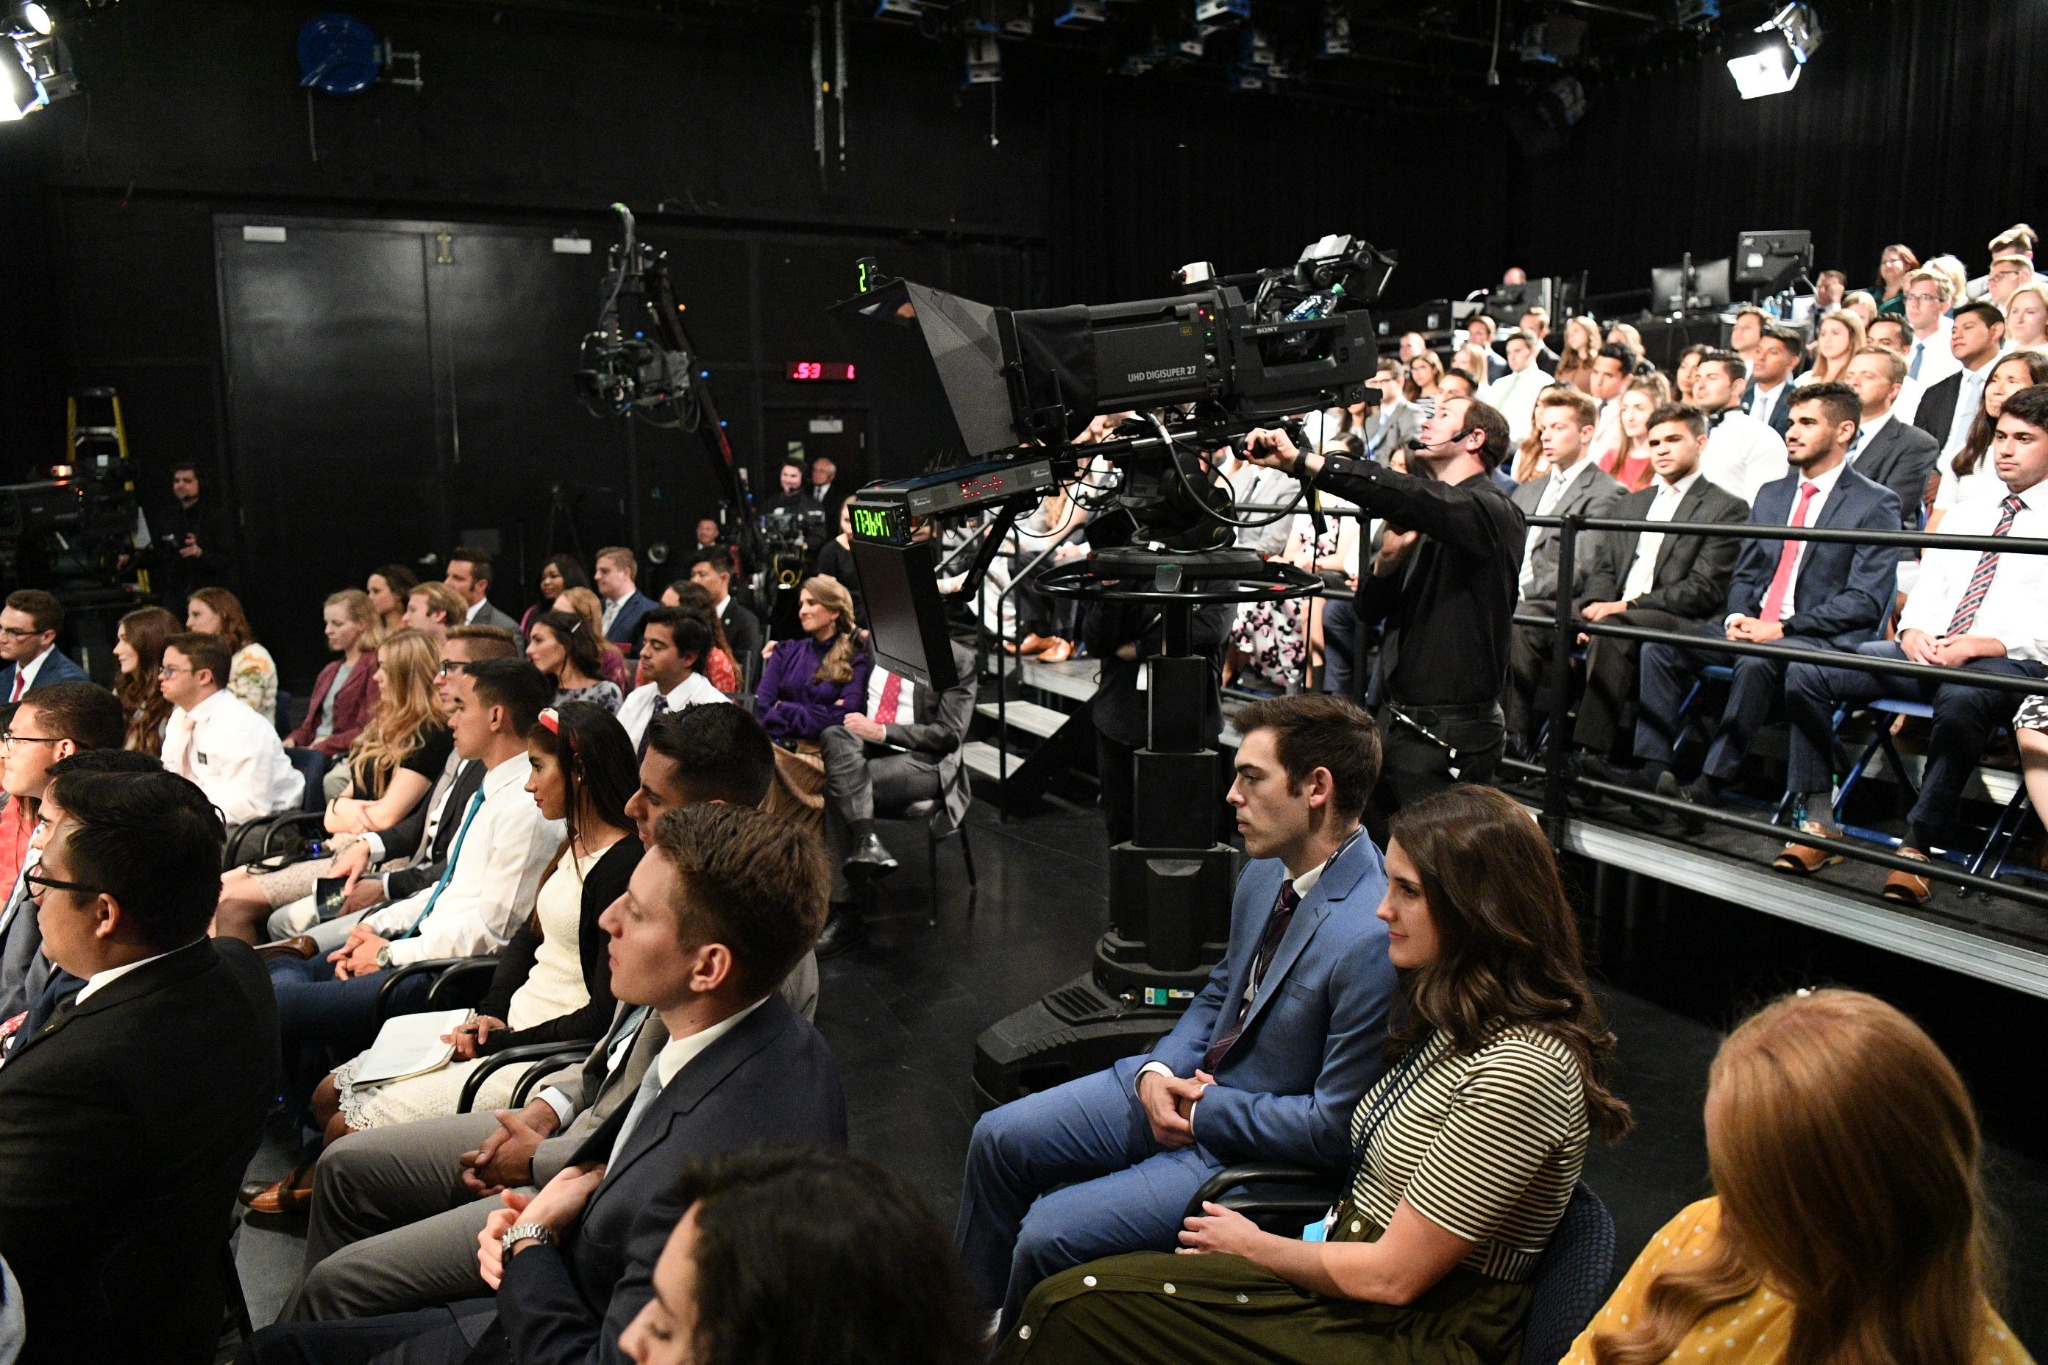 An audience of Latter-day Saint young adults gather in a BYU studio in Provo, Utah, and in other locations throughout the world for a Worldwide Devotional Face to Face broadcast on Sunday, September 15, 2019.